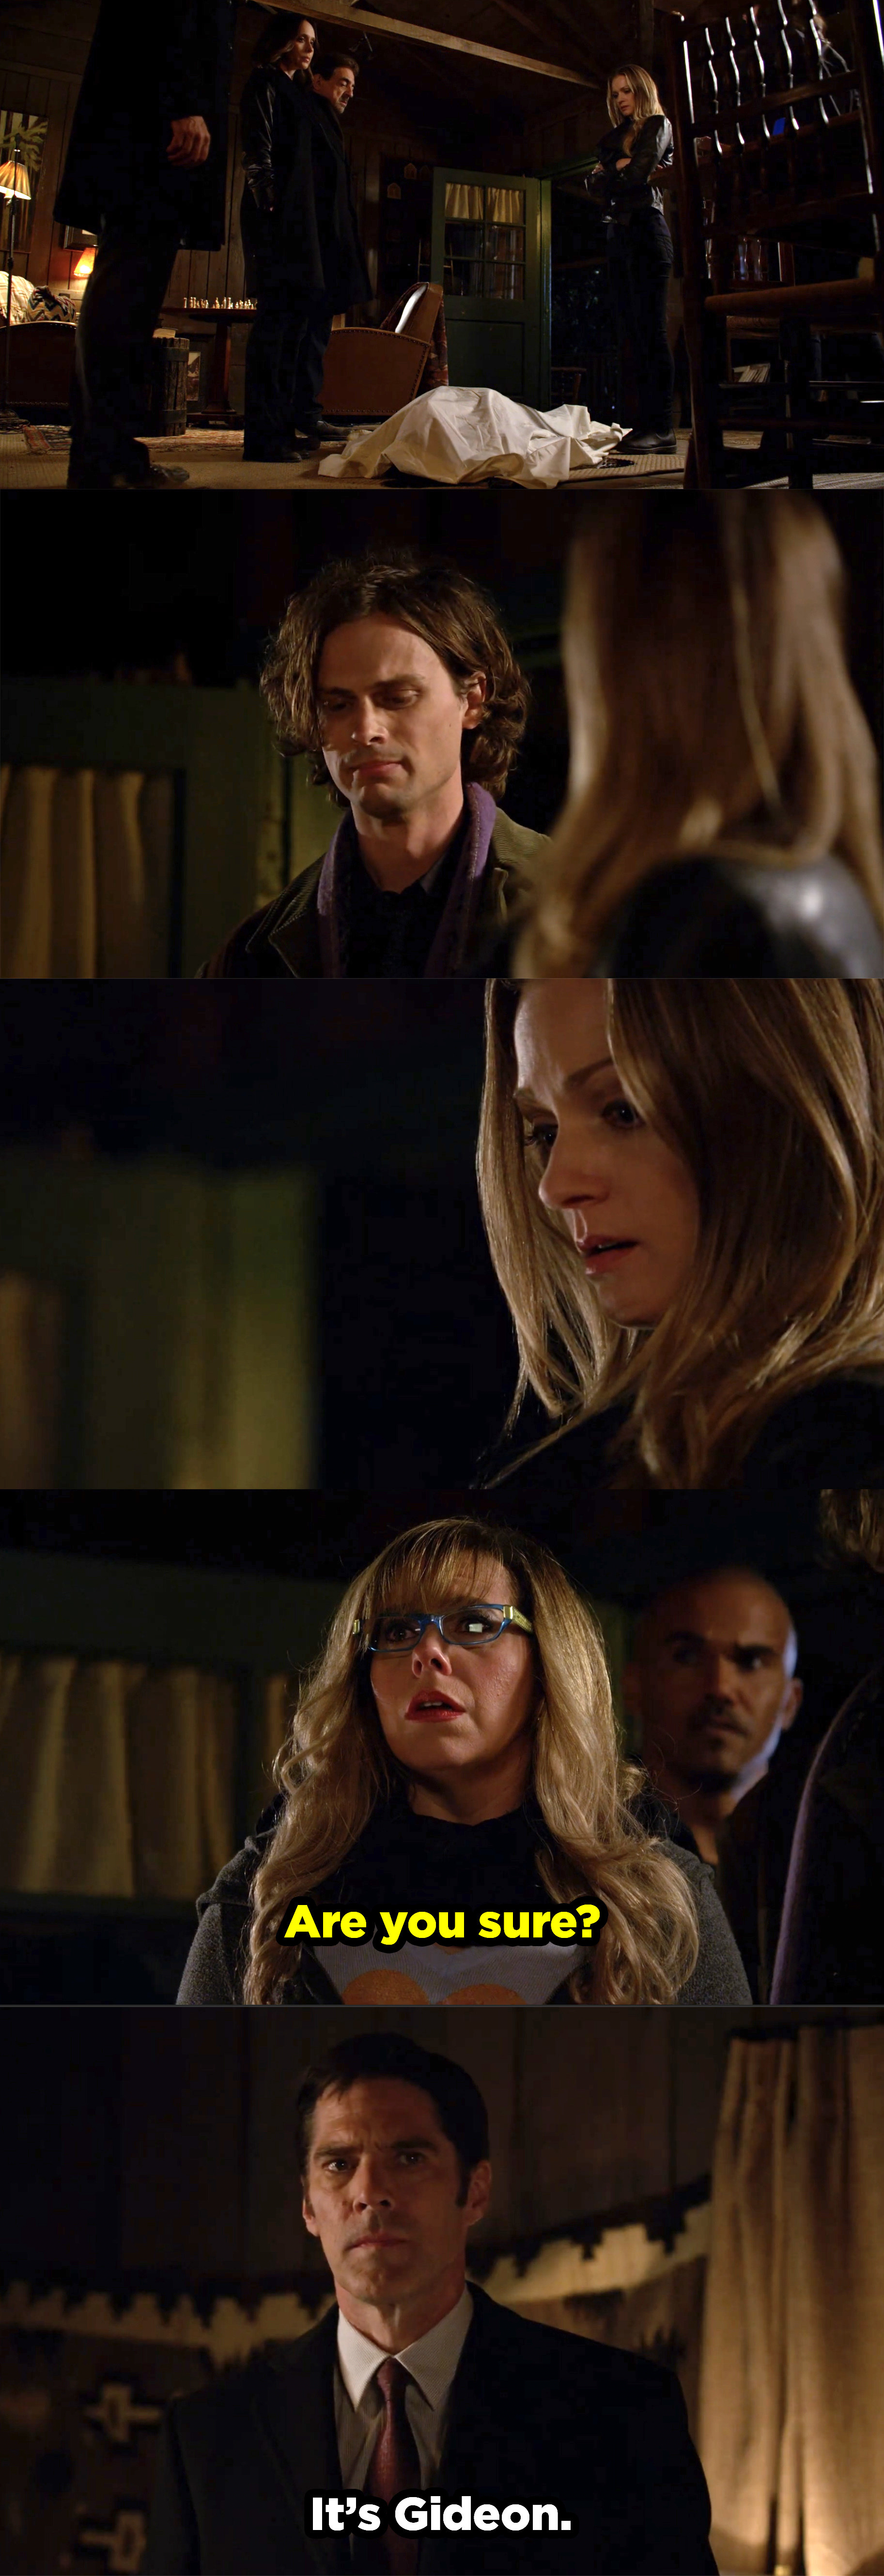 """The BAU arrives at Gideon's house and Garcia asks """"Are you sure?"""" and Hotch confirms """"It's Gideon."""""""